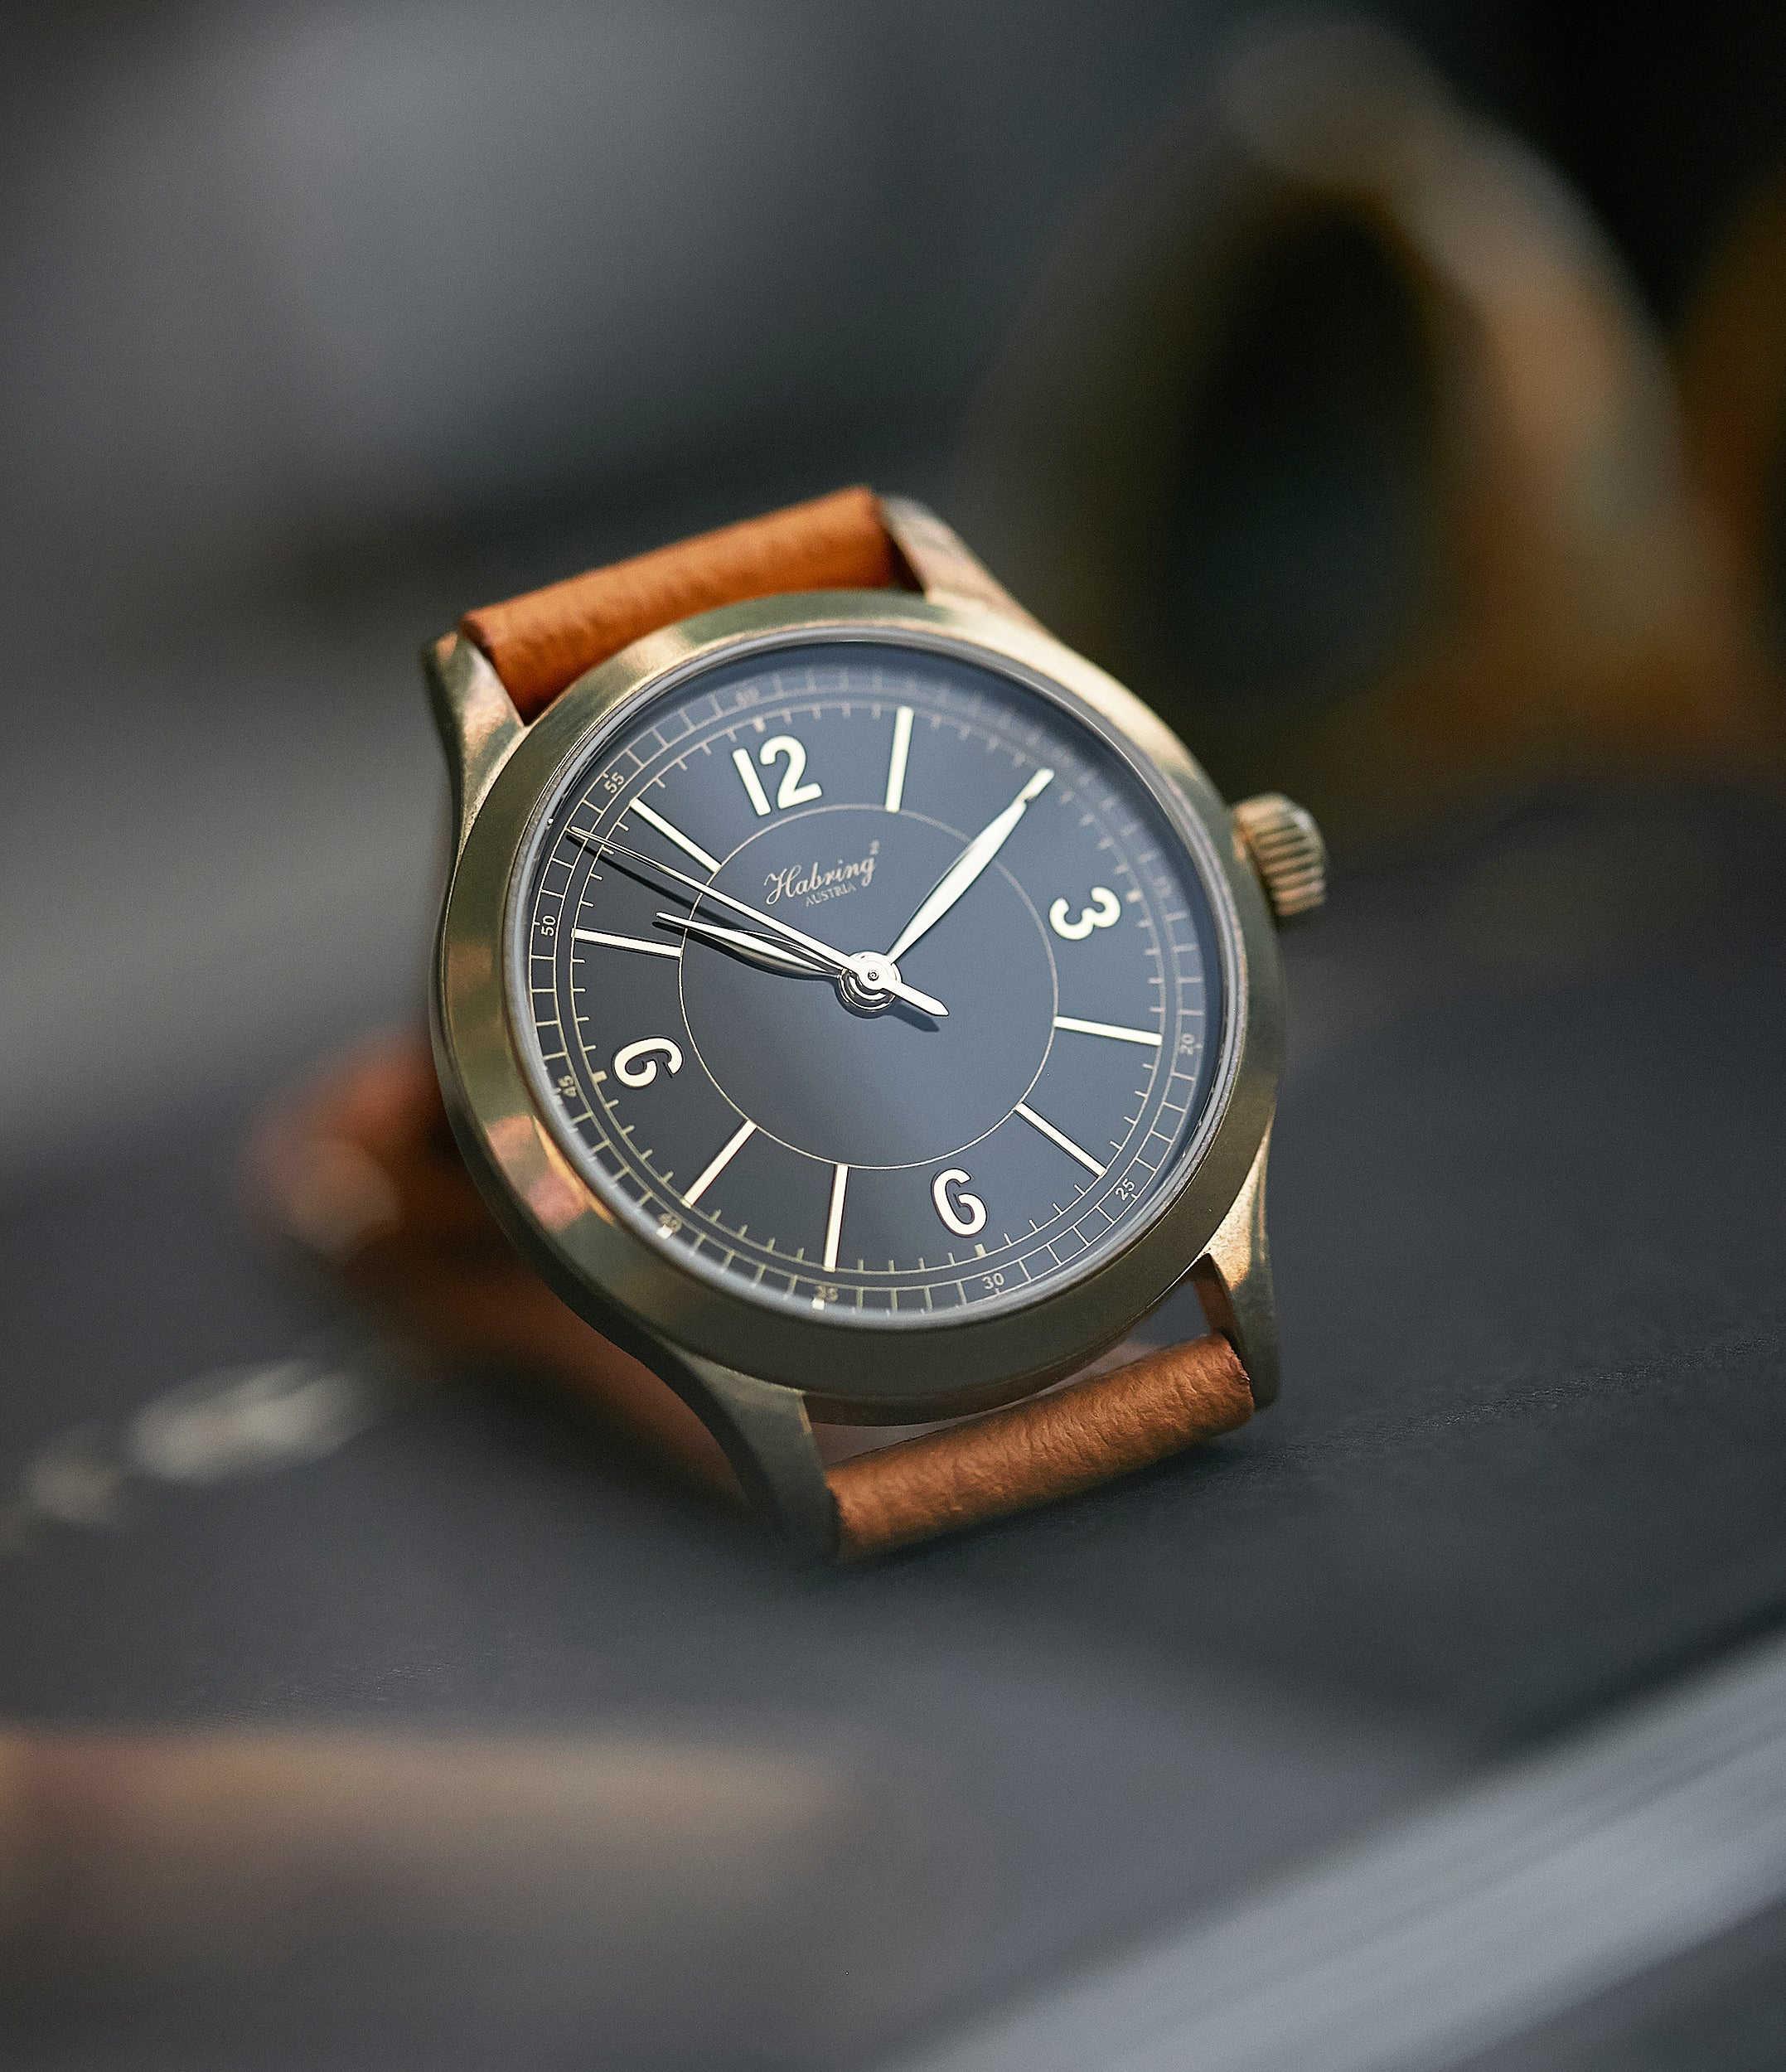 shop Habring2 Erwin LAB 01 Massena LAB Limited Edition bronze independent watchmaker dress watch for sale online at A Collected Man London UK rare watches